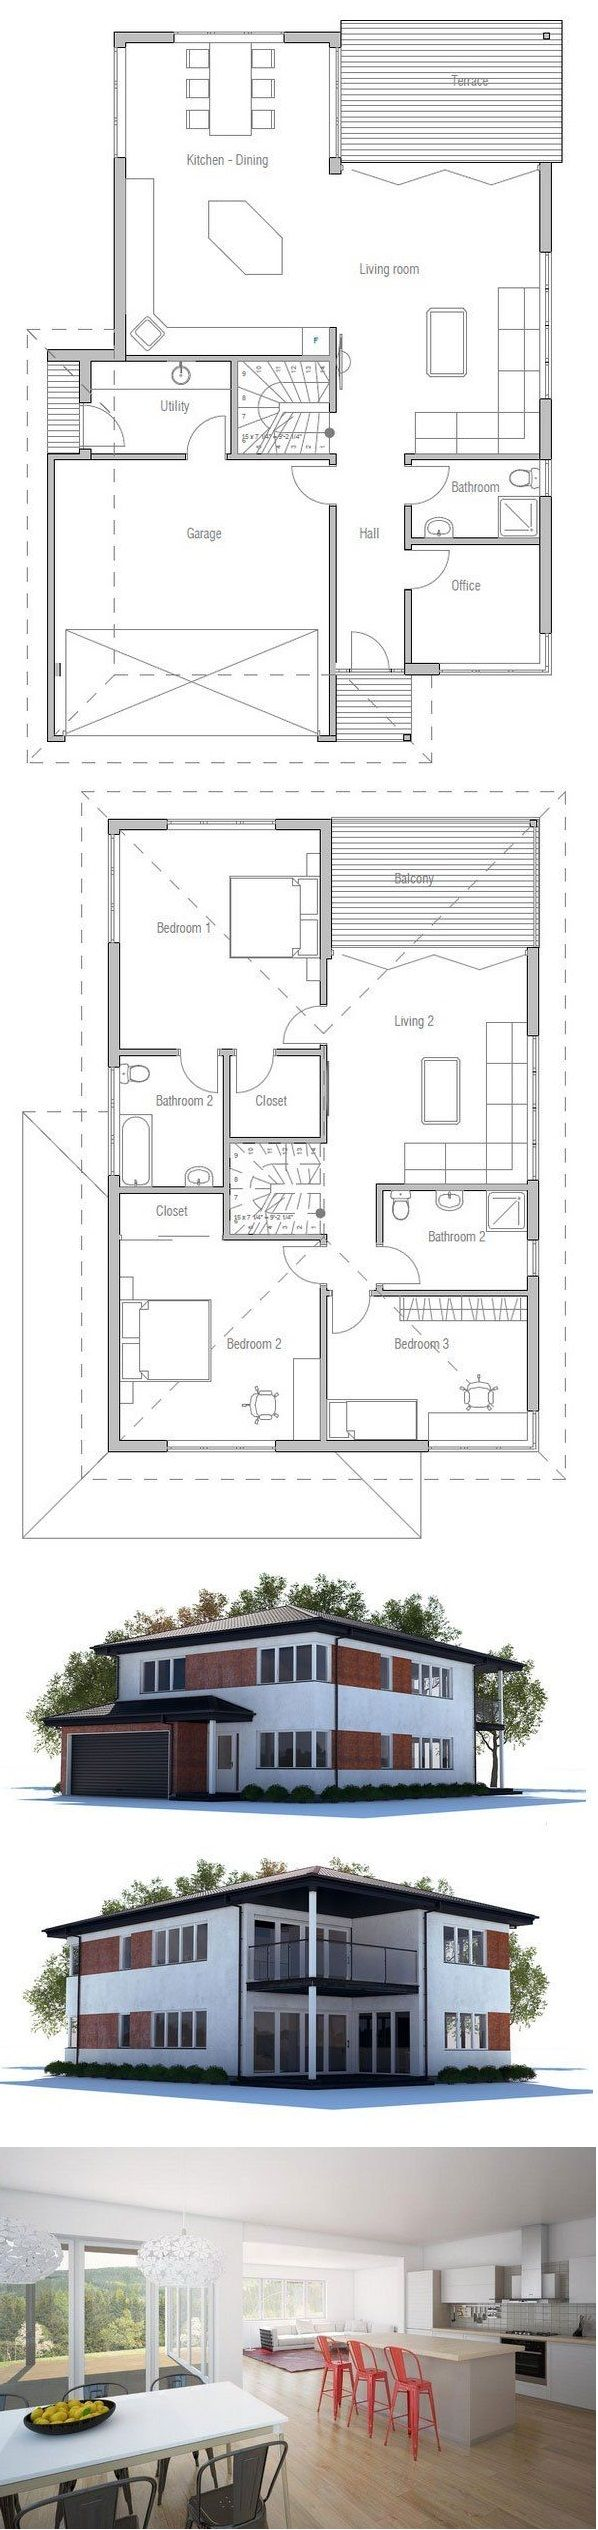 Would use 2nd floor living space and create another bedroom. Also update 2nd floor bath from shower to tub